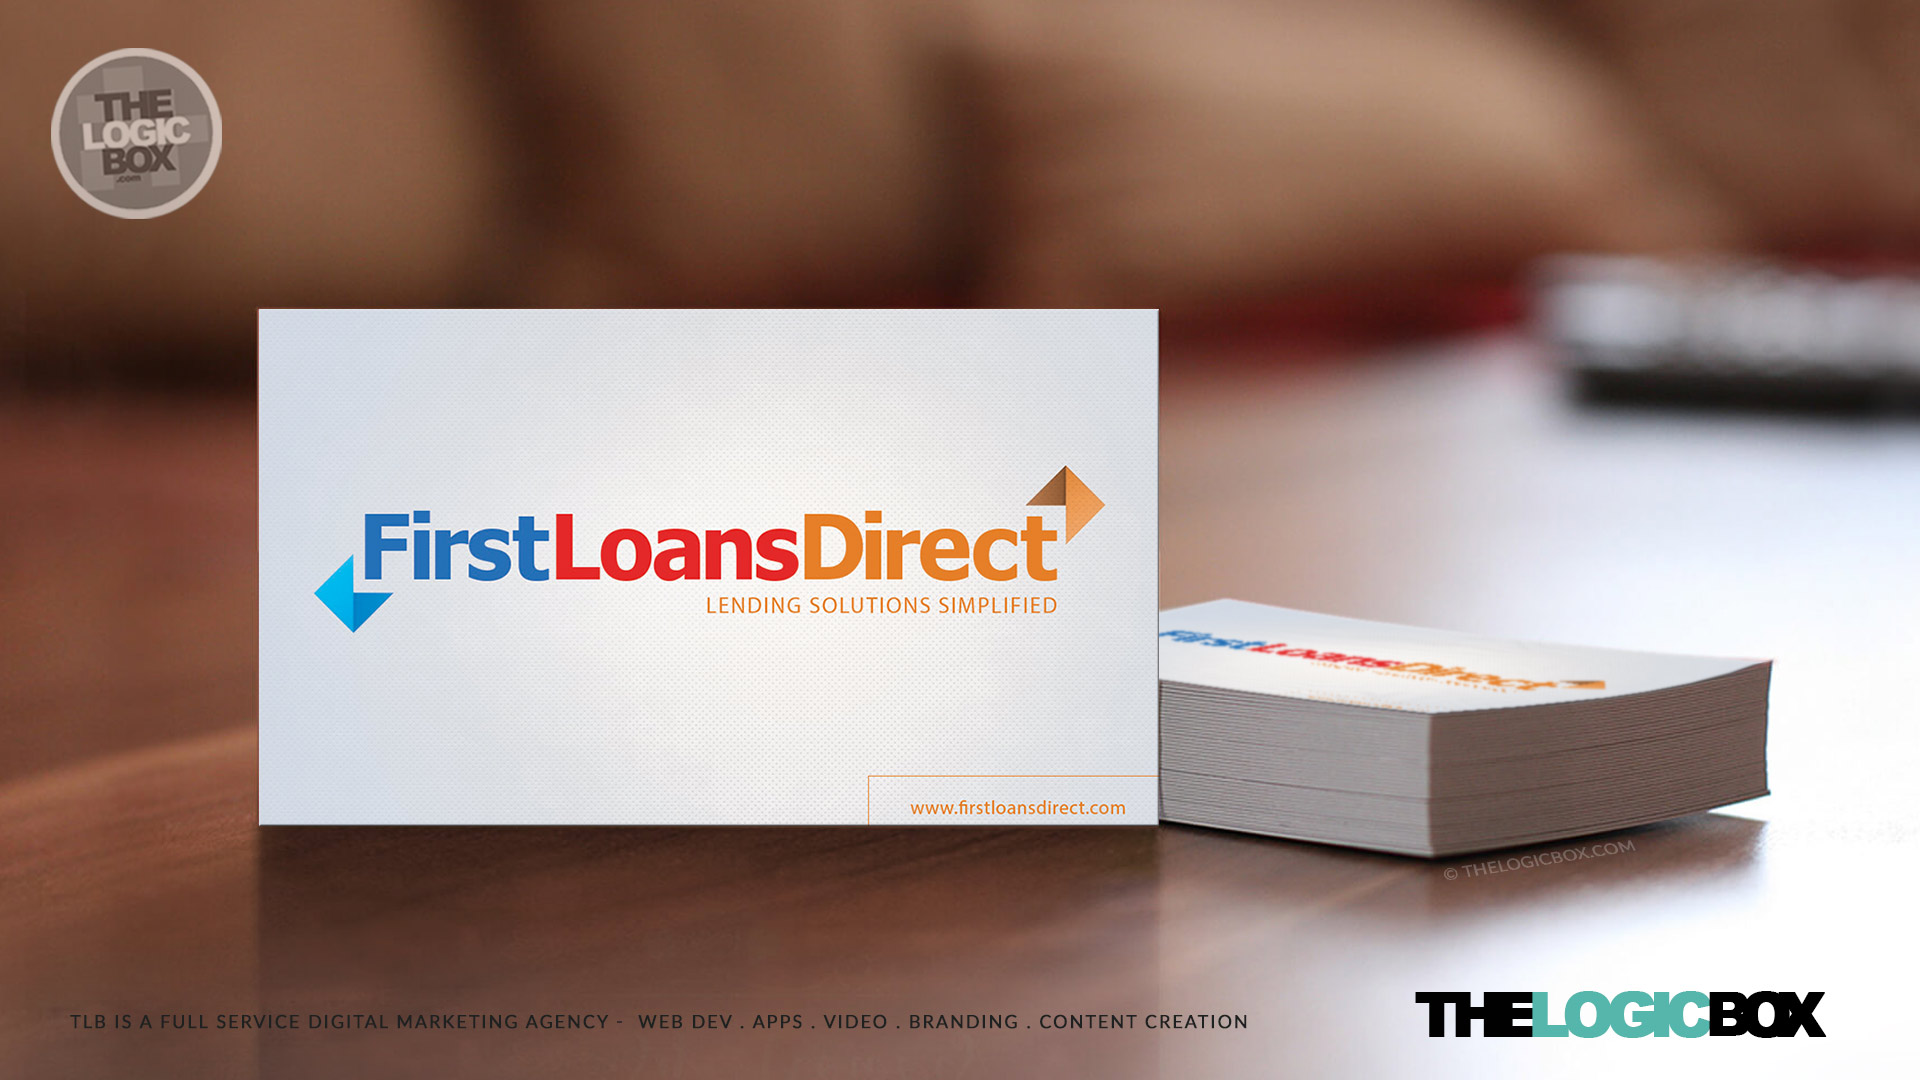 Logo business card design firstloansdirect logo personal loan services web design mississauga oakville burlington reheart